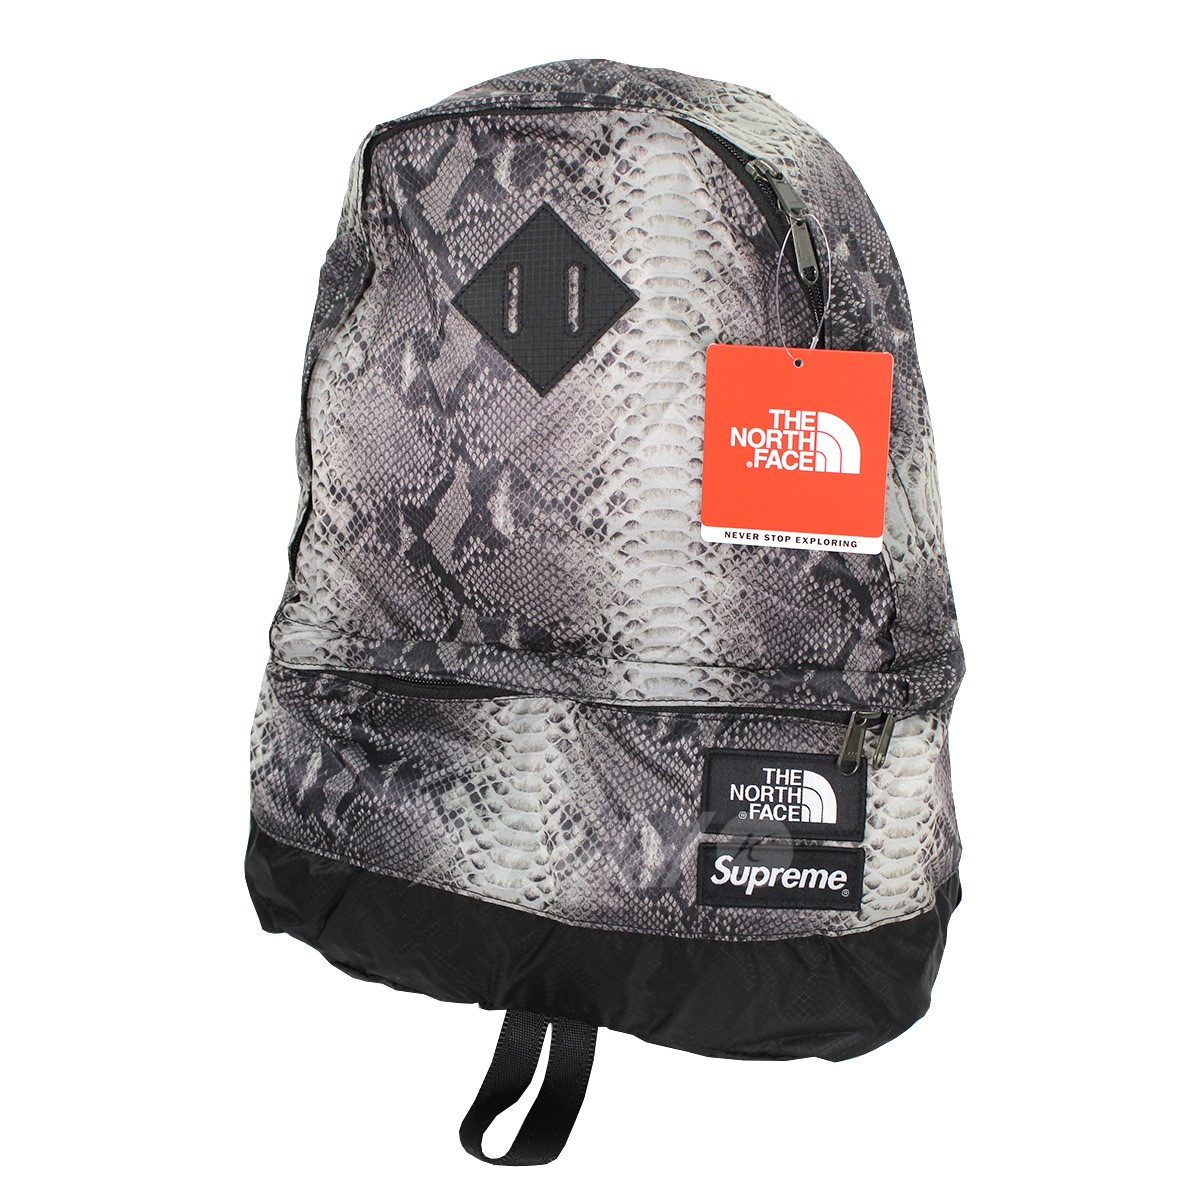 【中古】Supreme × THE NORTH FACE 18SS Snake Lightweight Daypack スネークバックパック 【送料無料】 【011104】 【KIND1551】